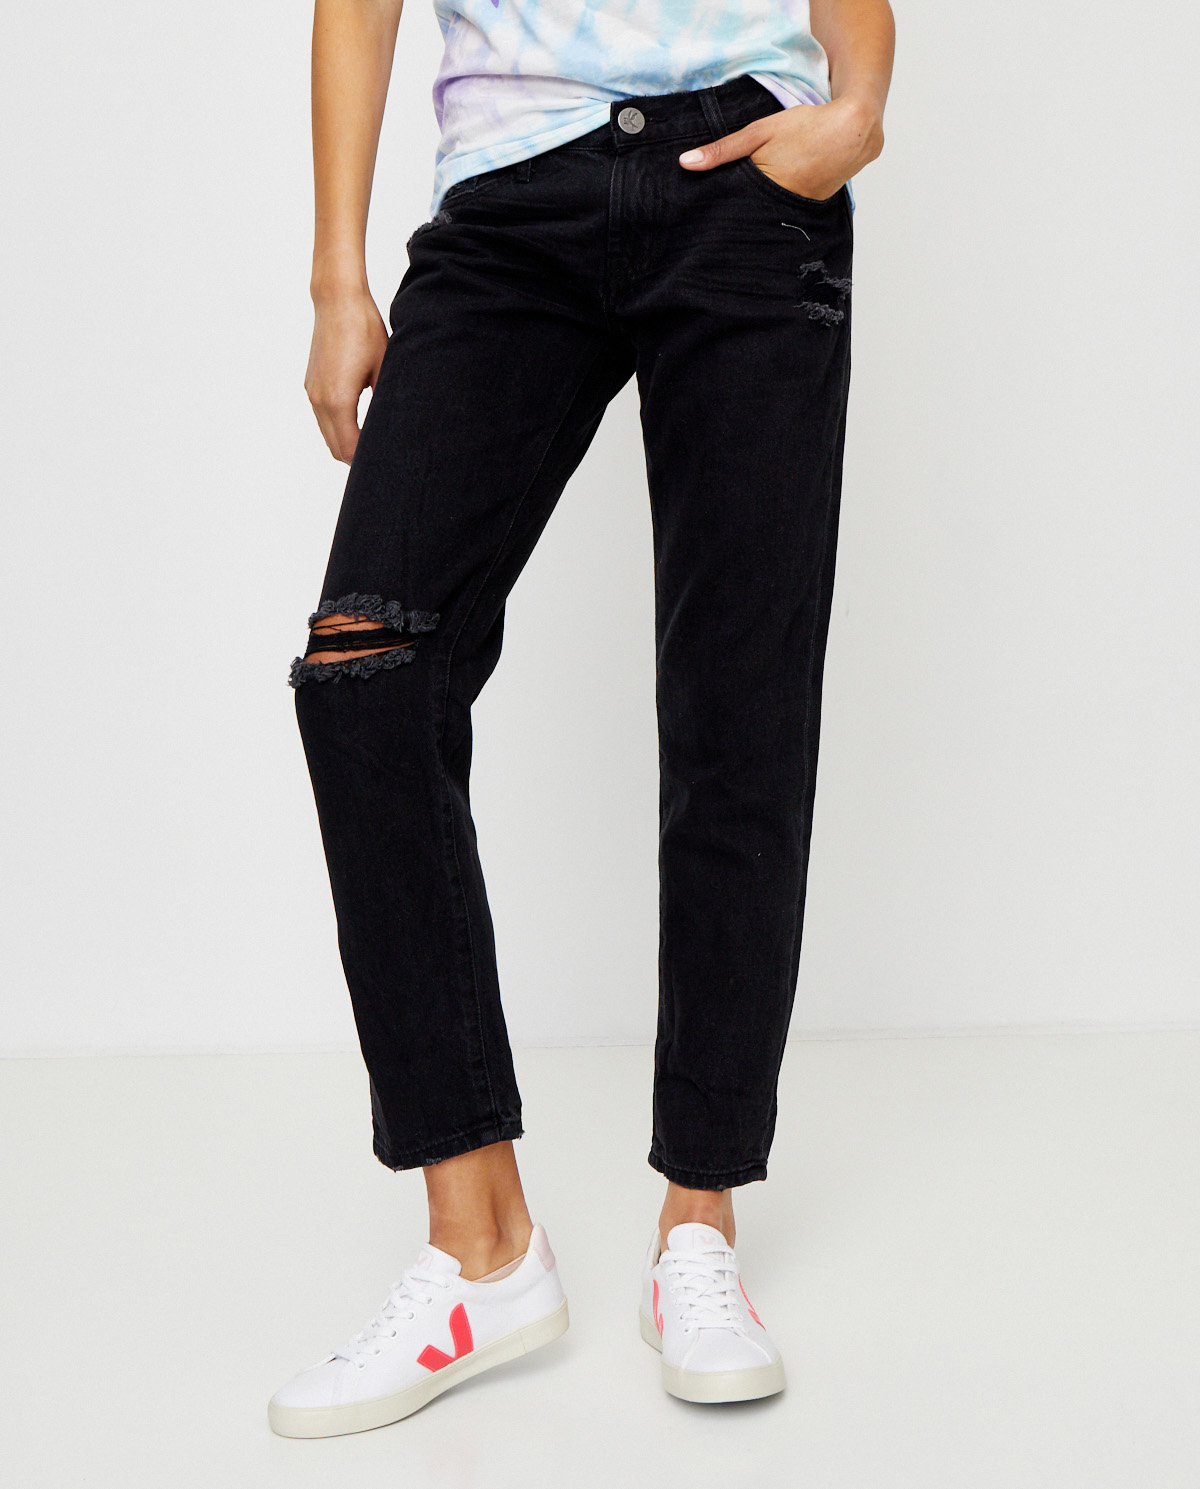 Damskie jeansy Awesome Baggies oneteaspoon 22589 DOUBLE BLK